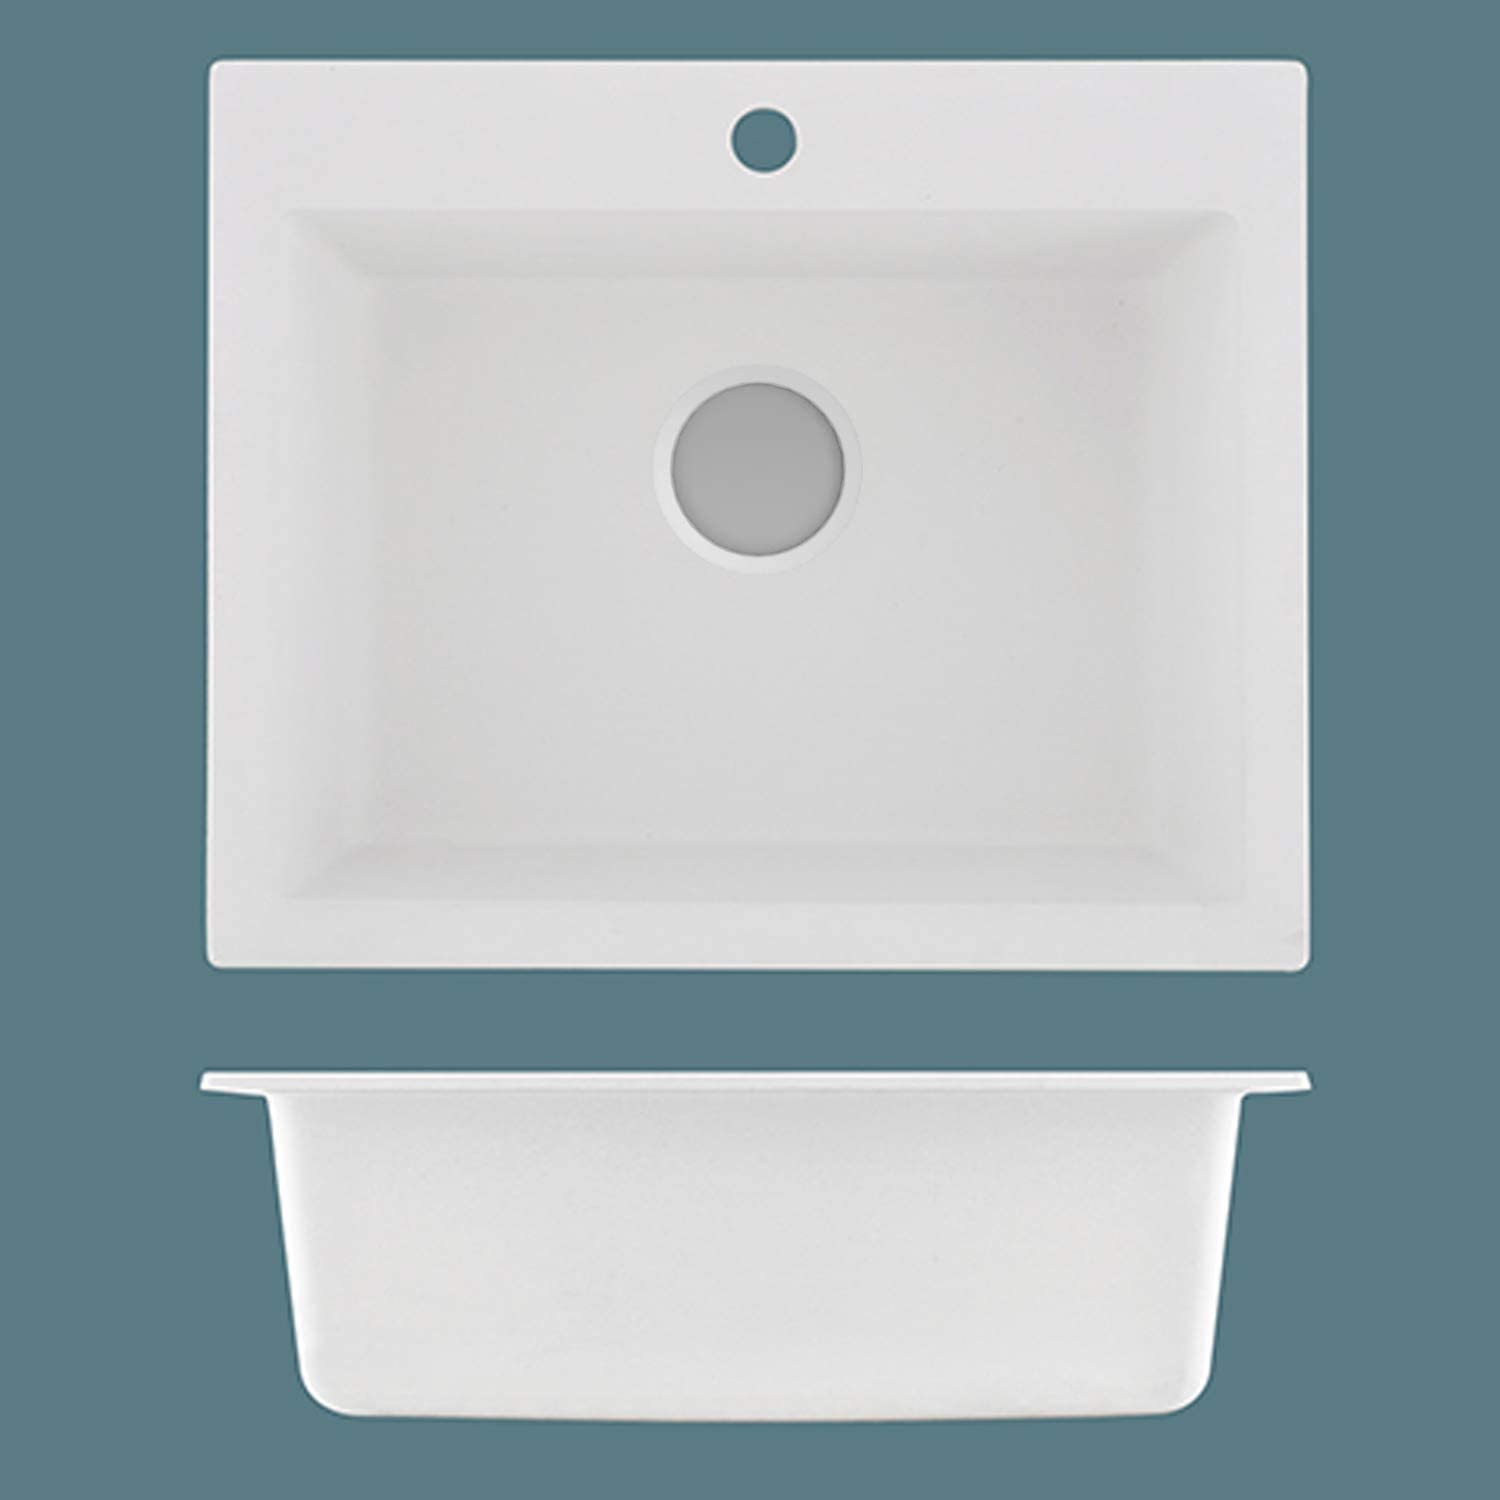 Commercial Quartz Stone Single Bowl Kitchen Sink 23 x 19 inch Topmount Drop-in Prep Bar Sink with 1-Hole, White